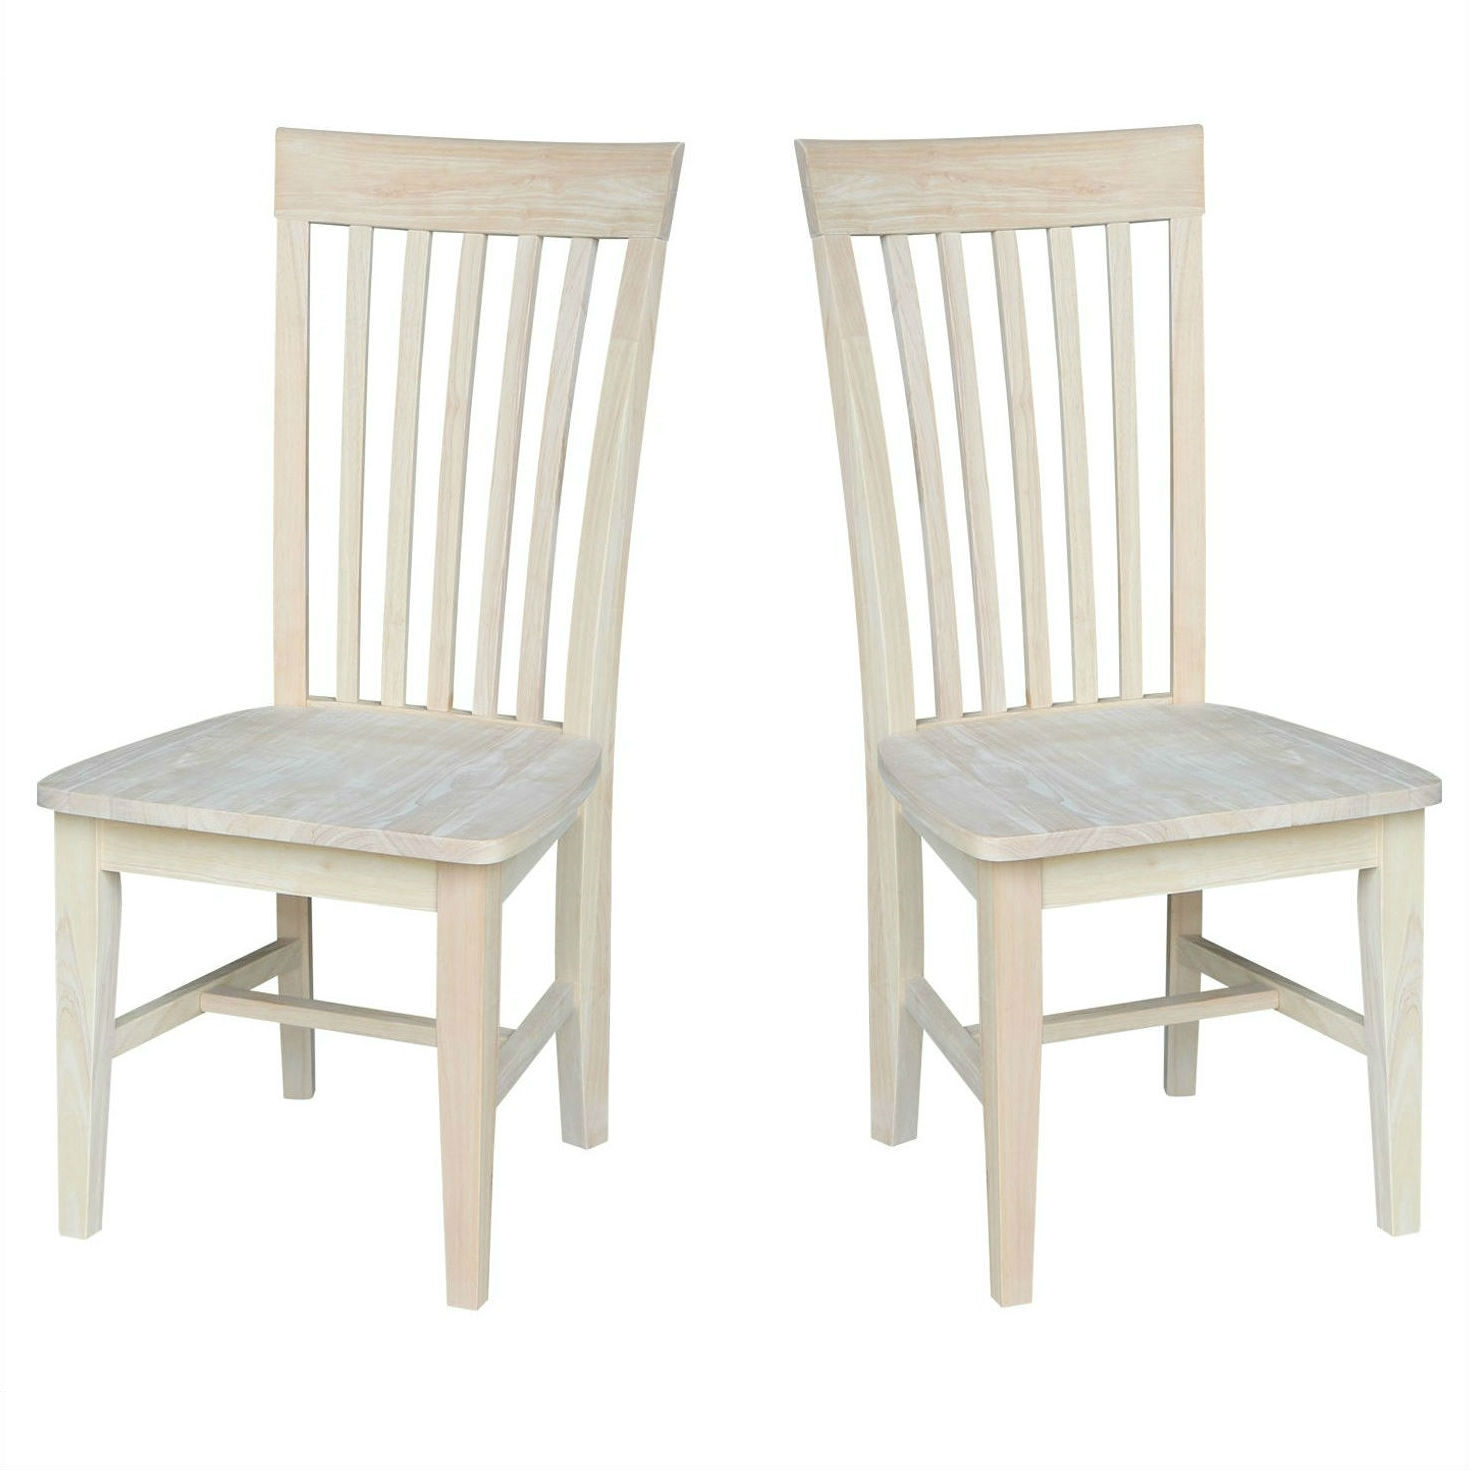 Set Of 2 Mission Style Unfinished Wood Dining Chair With High Back Fastfurnishings Com